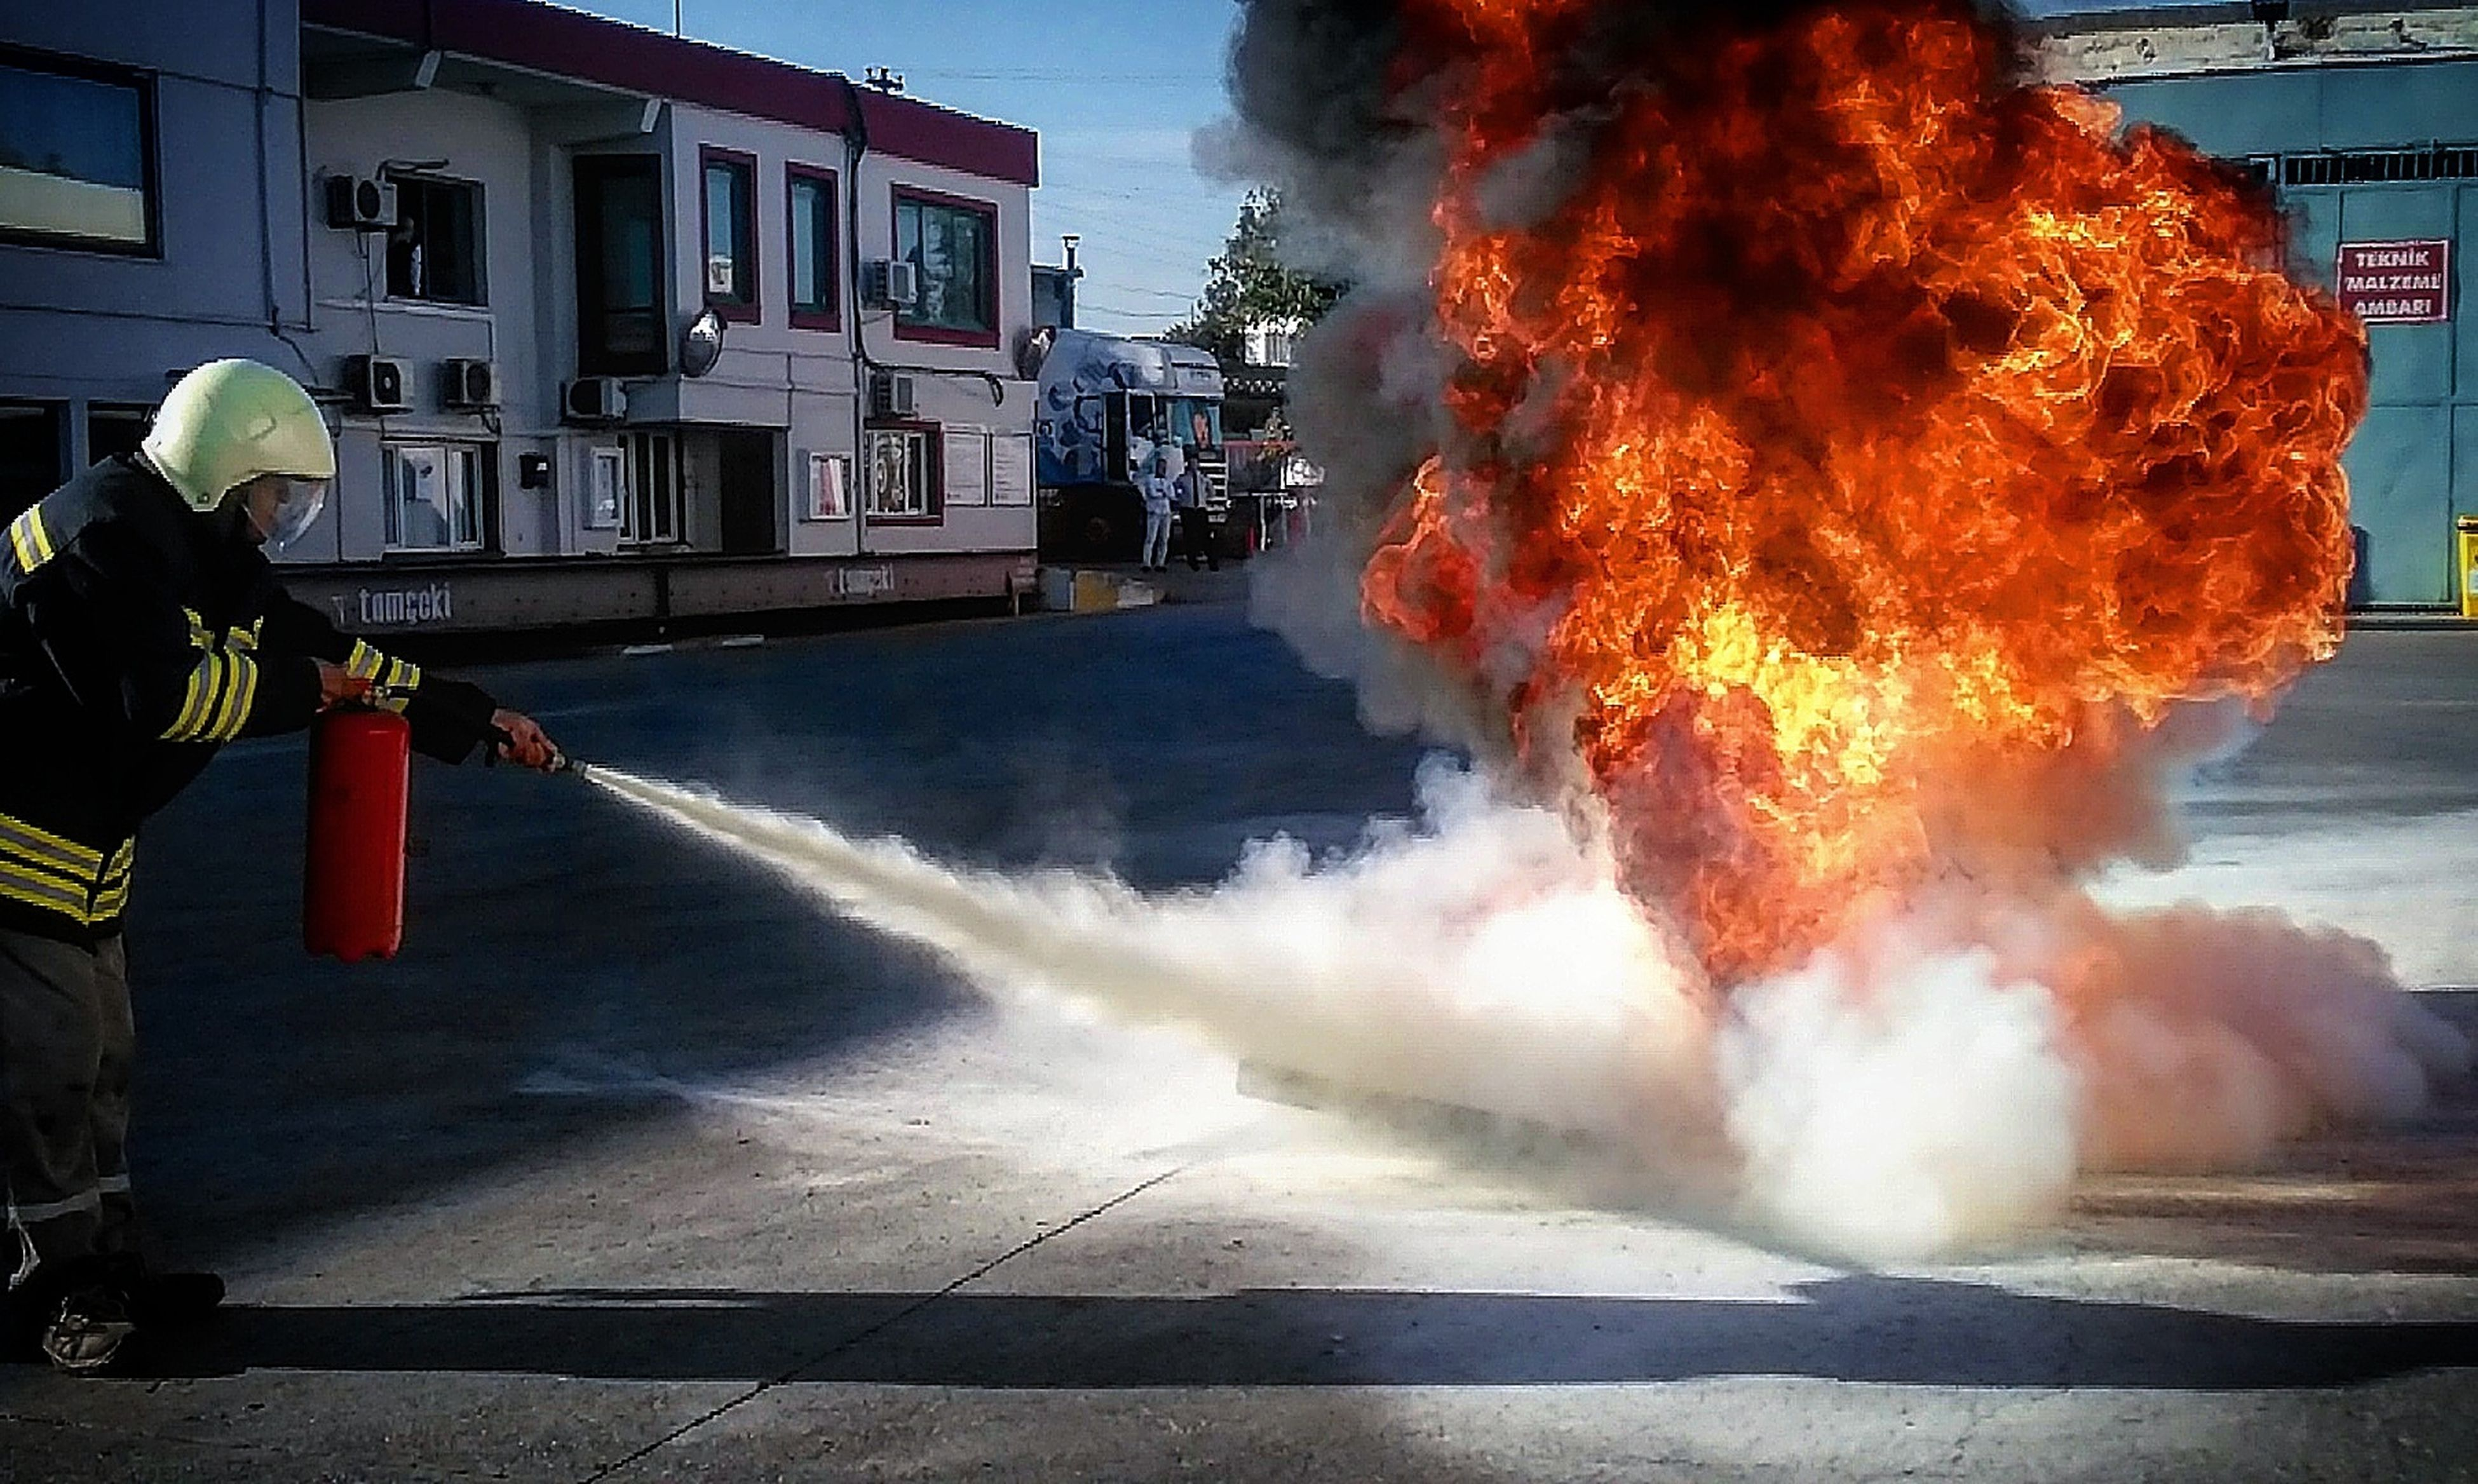 building exterior, outdoors, smoke - physical structure, courage, built structure, exploding, heat - temperature, firefighter, sky, rescue, night, water, adults only, emergency equipment, only men, people, adult